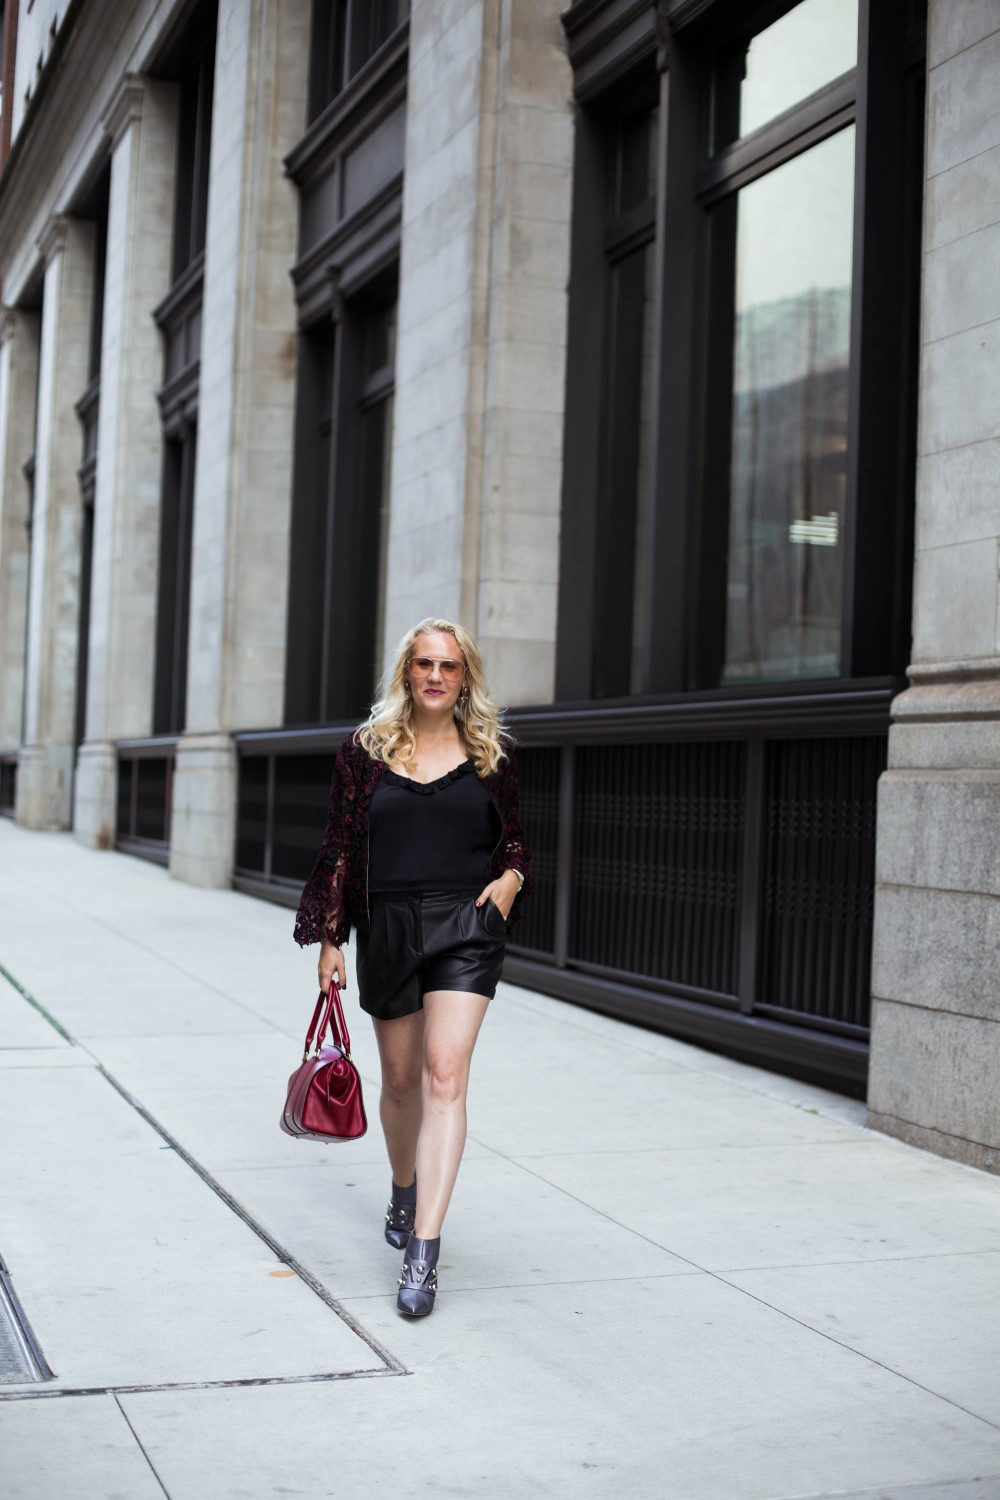 Lace Bomber Jacket-Kobi Halperin for Macy's-NYFW Street Style-NYFW SS18-Outfit Inspiration-Faux Leather Shorts-BCBG-Fall Fashion-Donald Pliner Booties-Geene Boots from Donald J Pliner-Have Need Want 7